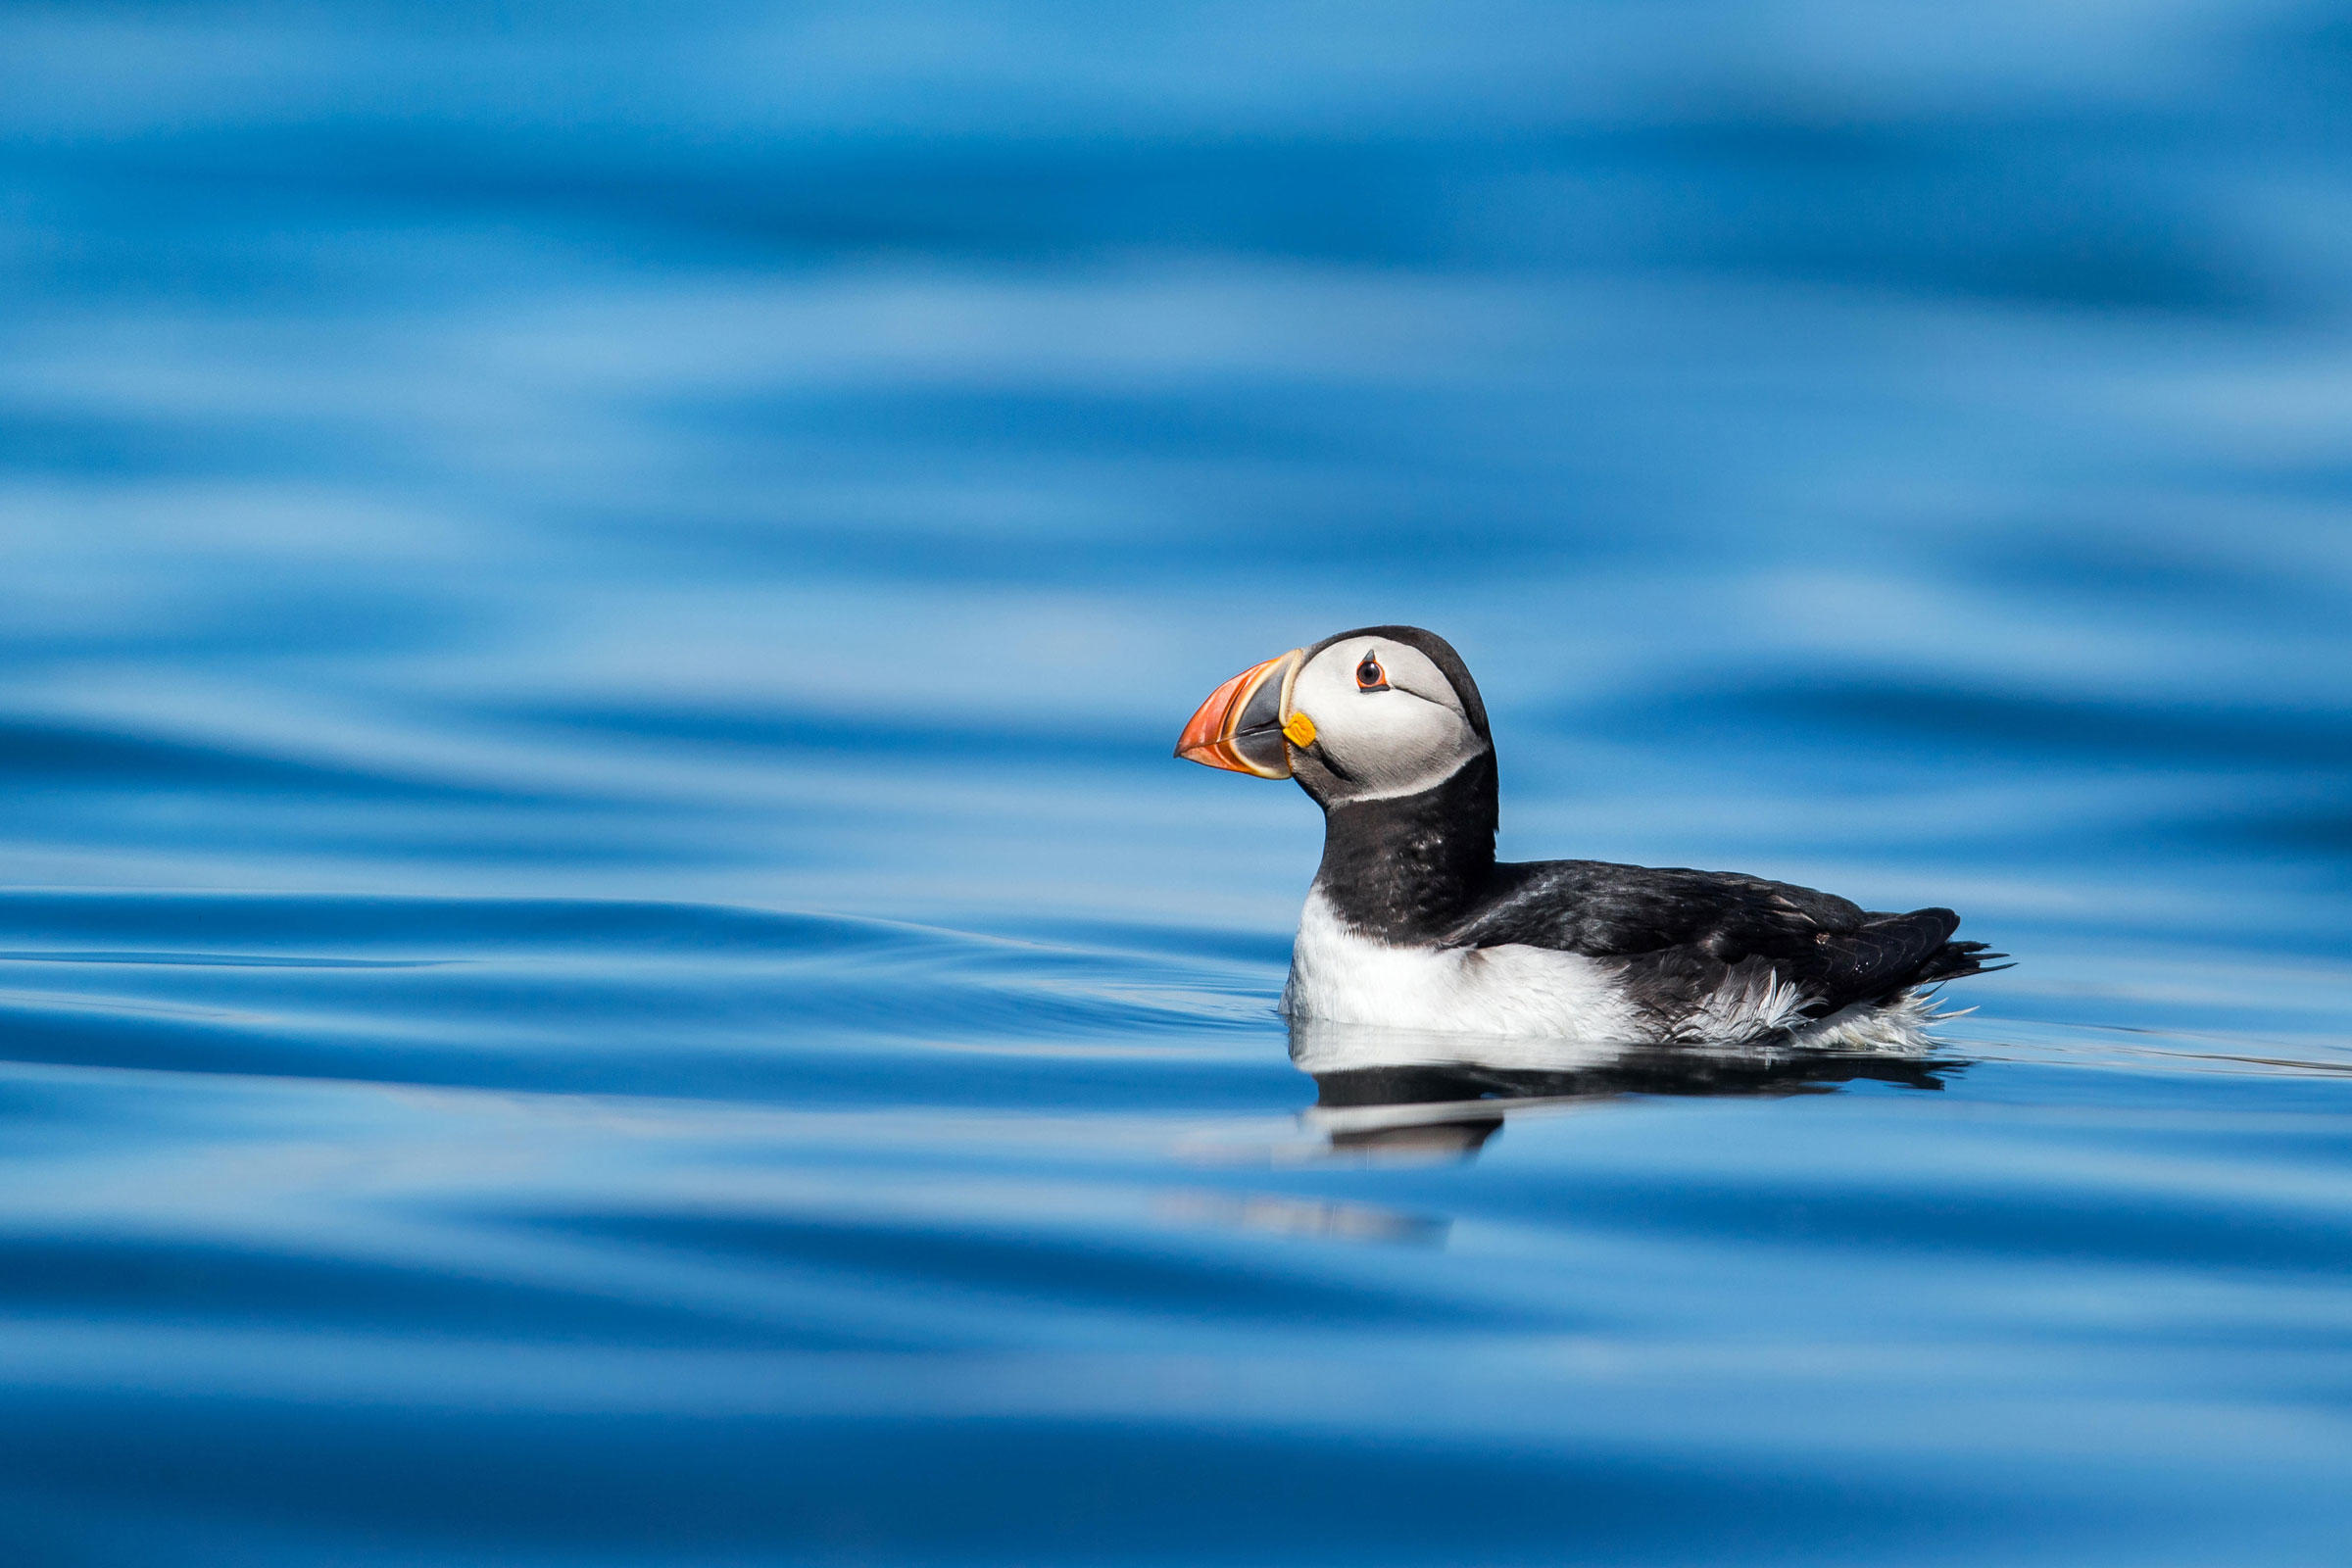 Atlantic Puffin winter in and around the Northeast Canyons and Seamounts Marine National Monument. Drew Buckley/Alamy